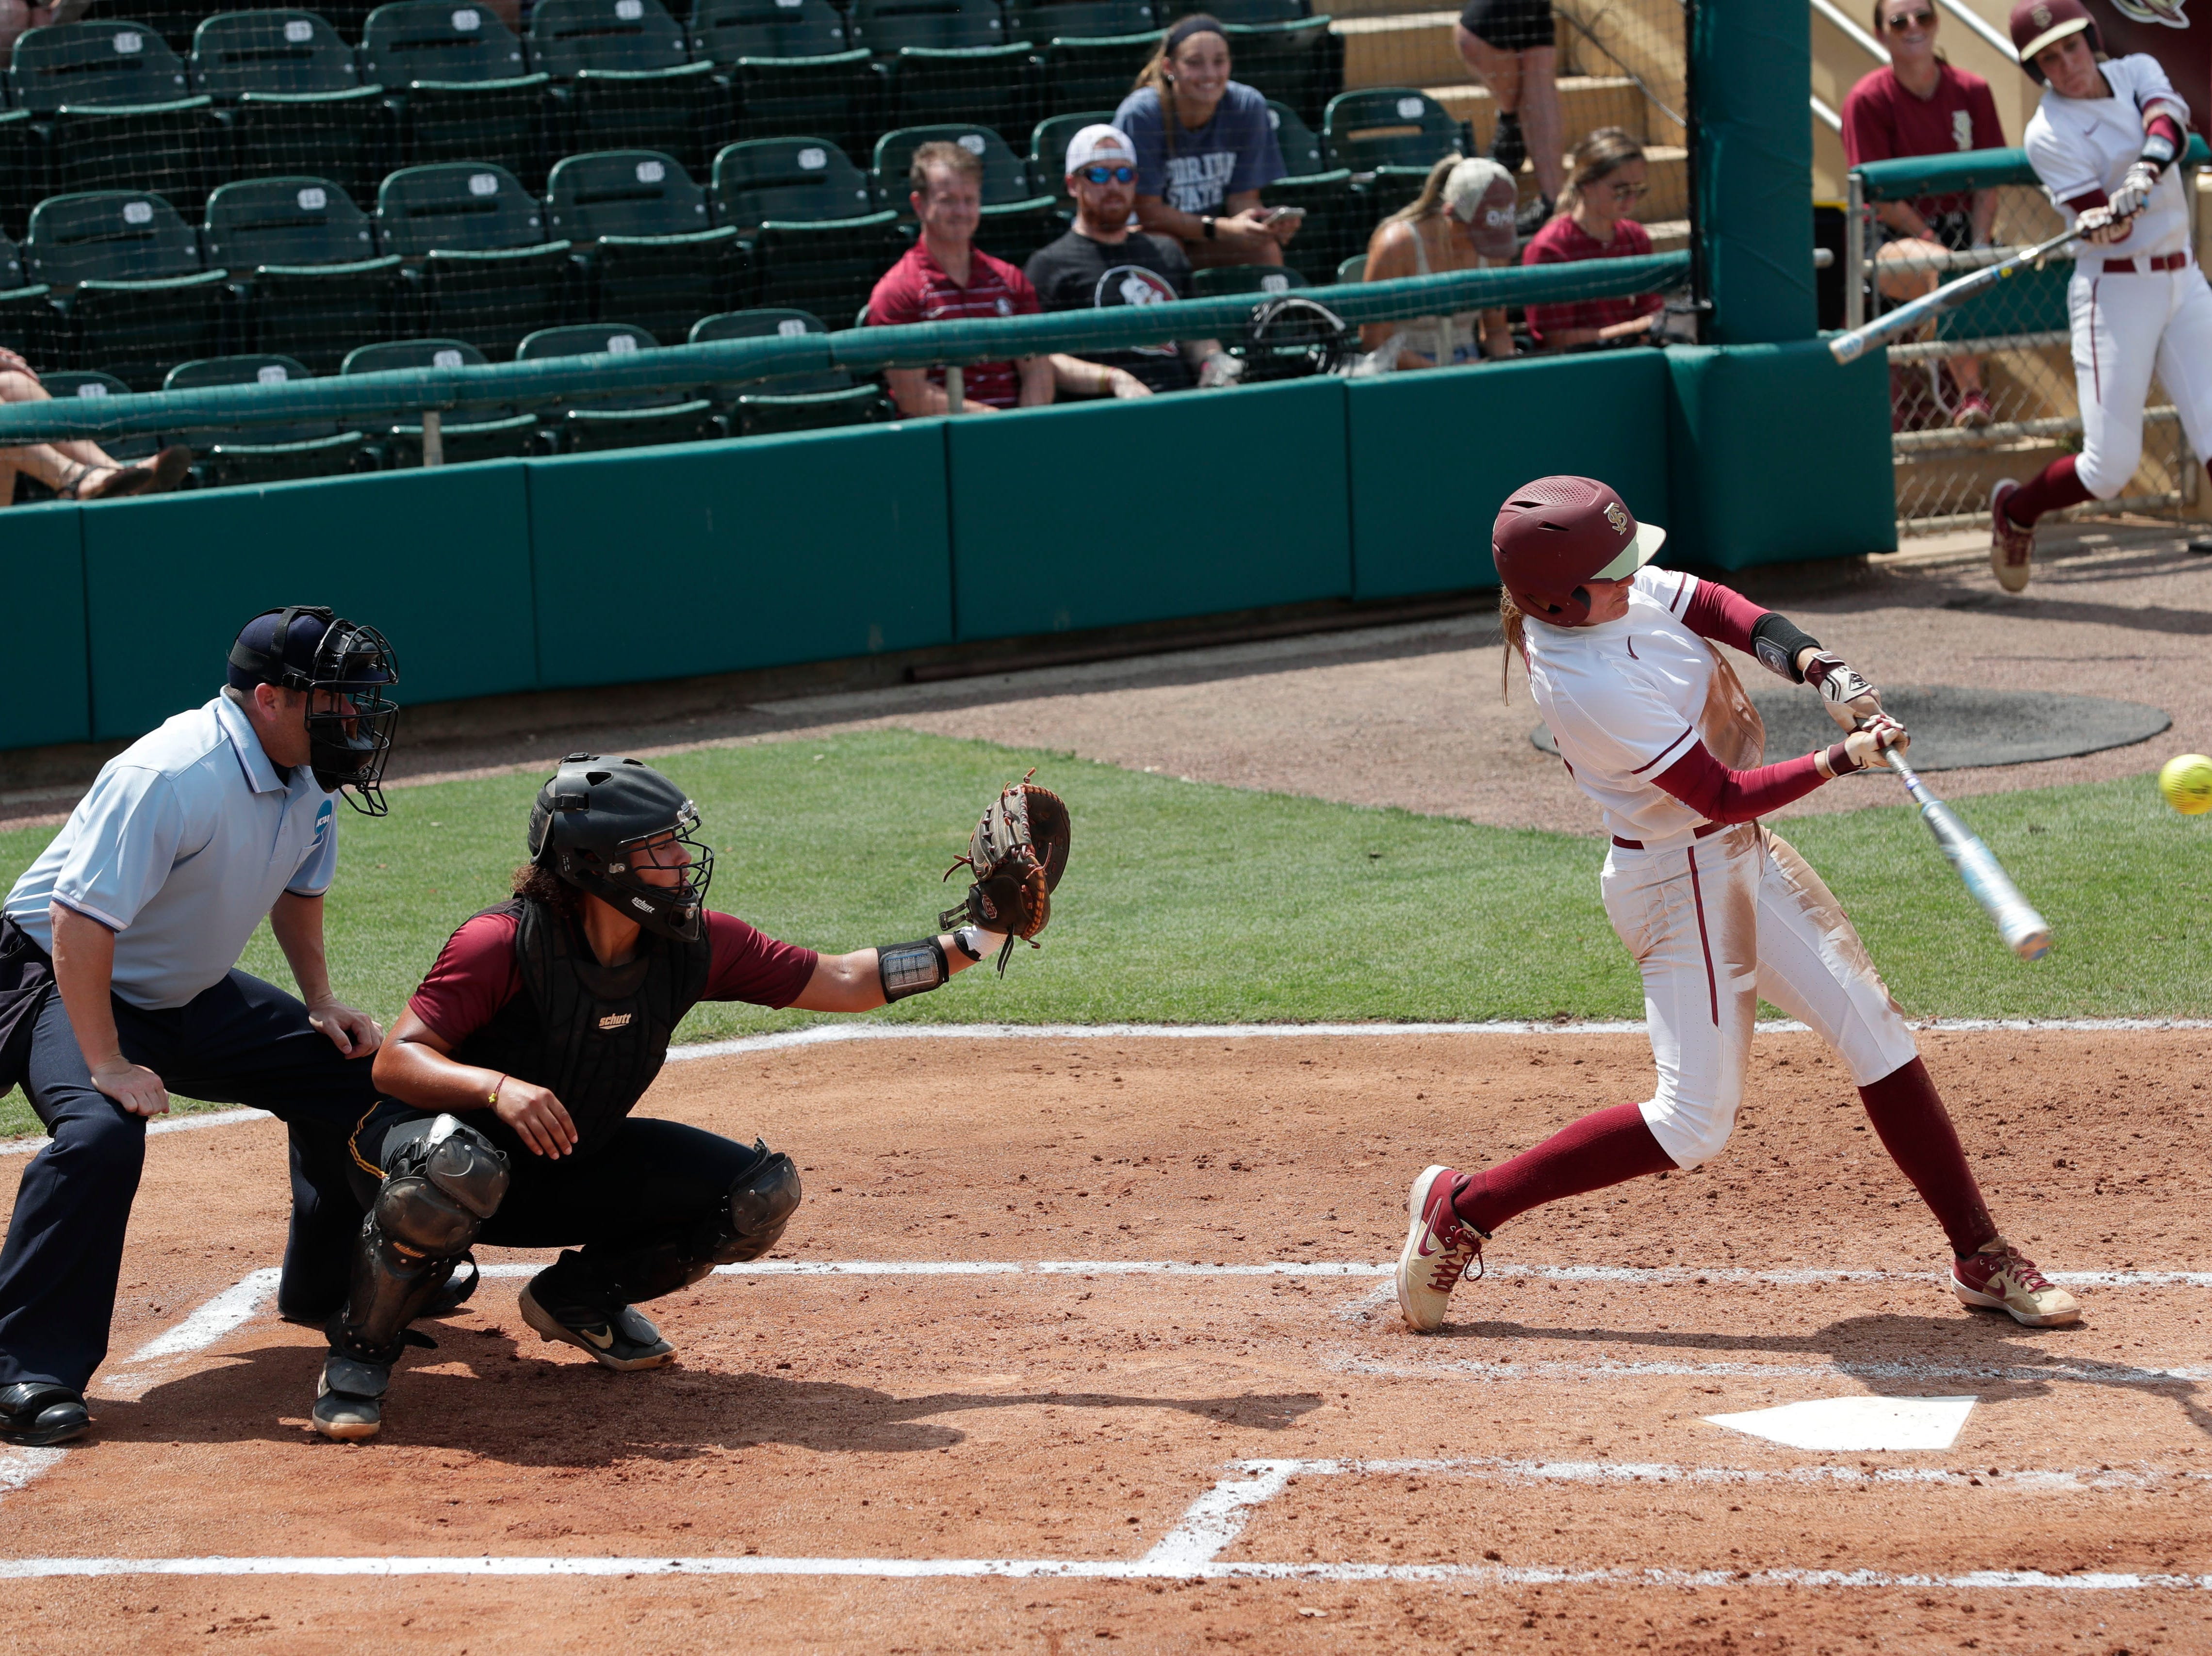 The Florida State Seminoles host the Bethune-Cookman Wildcats in the first round of the NCAA Regional Playoffs Friday, May 17, 2019.